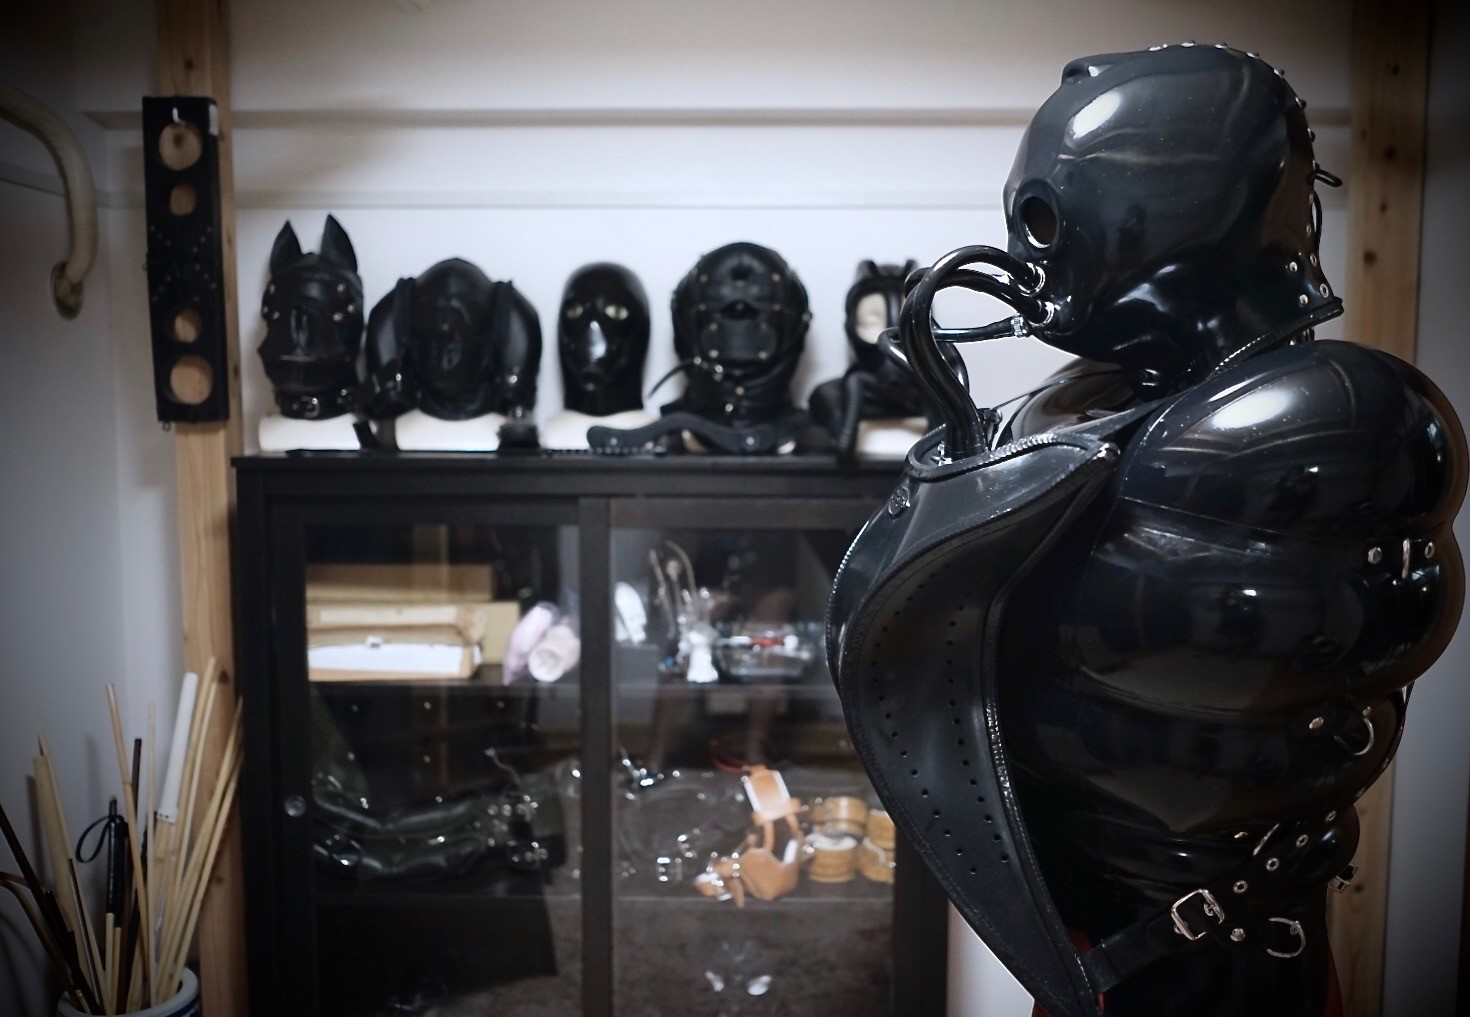 Finest rubbers Catsuits